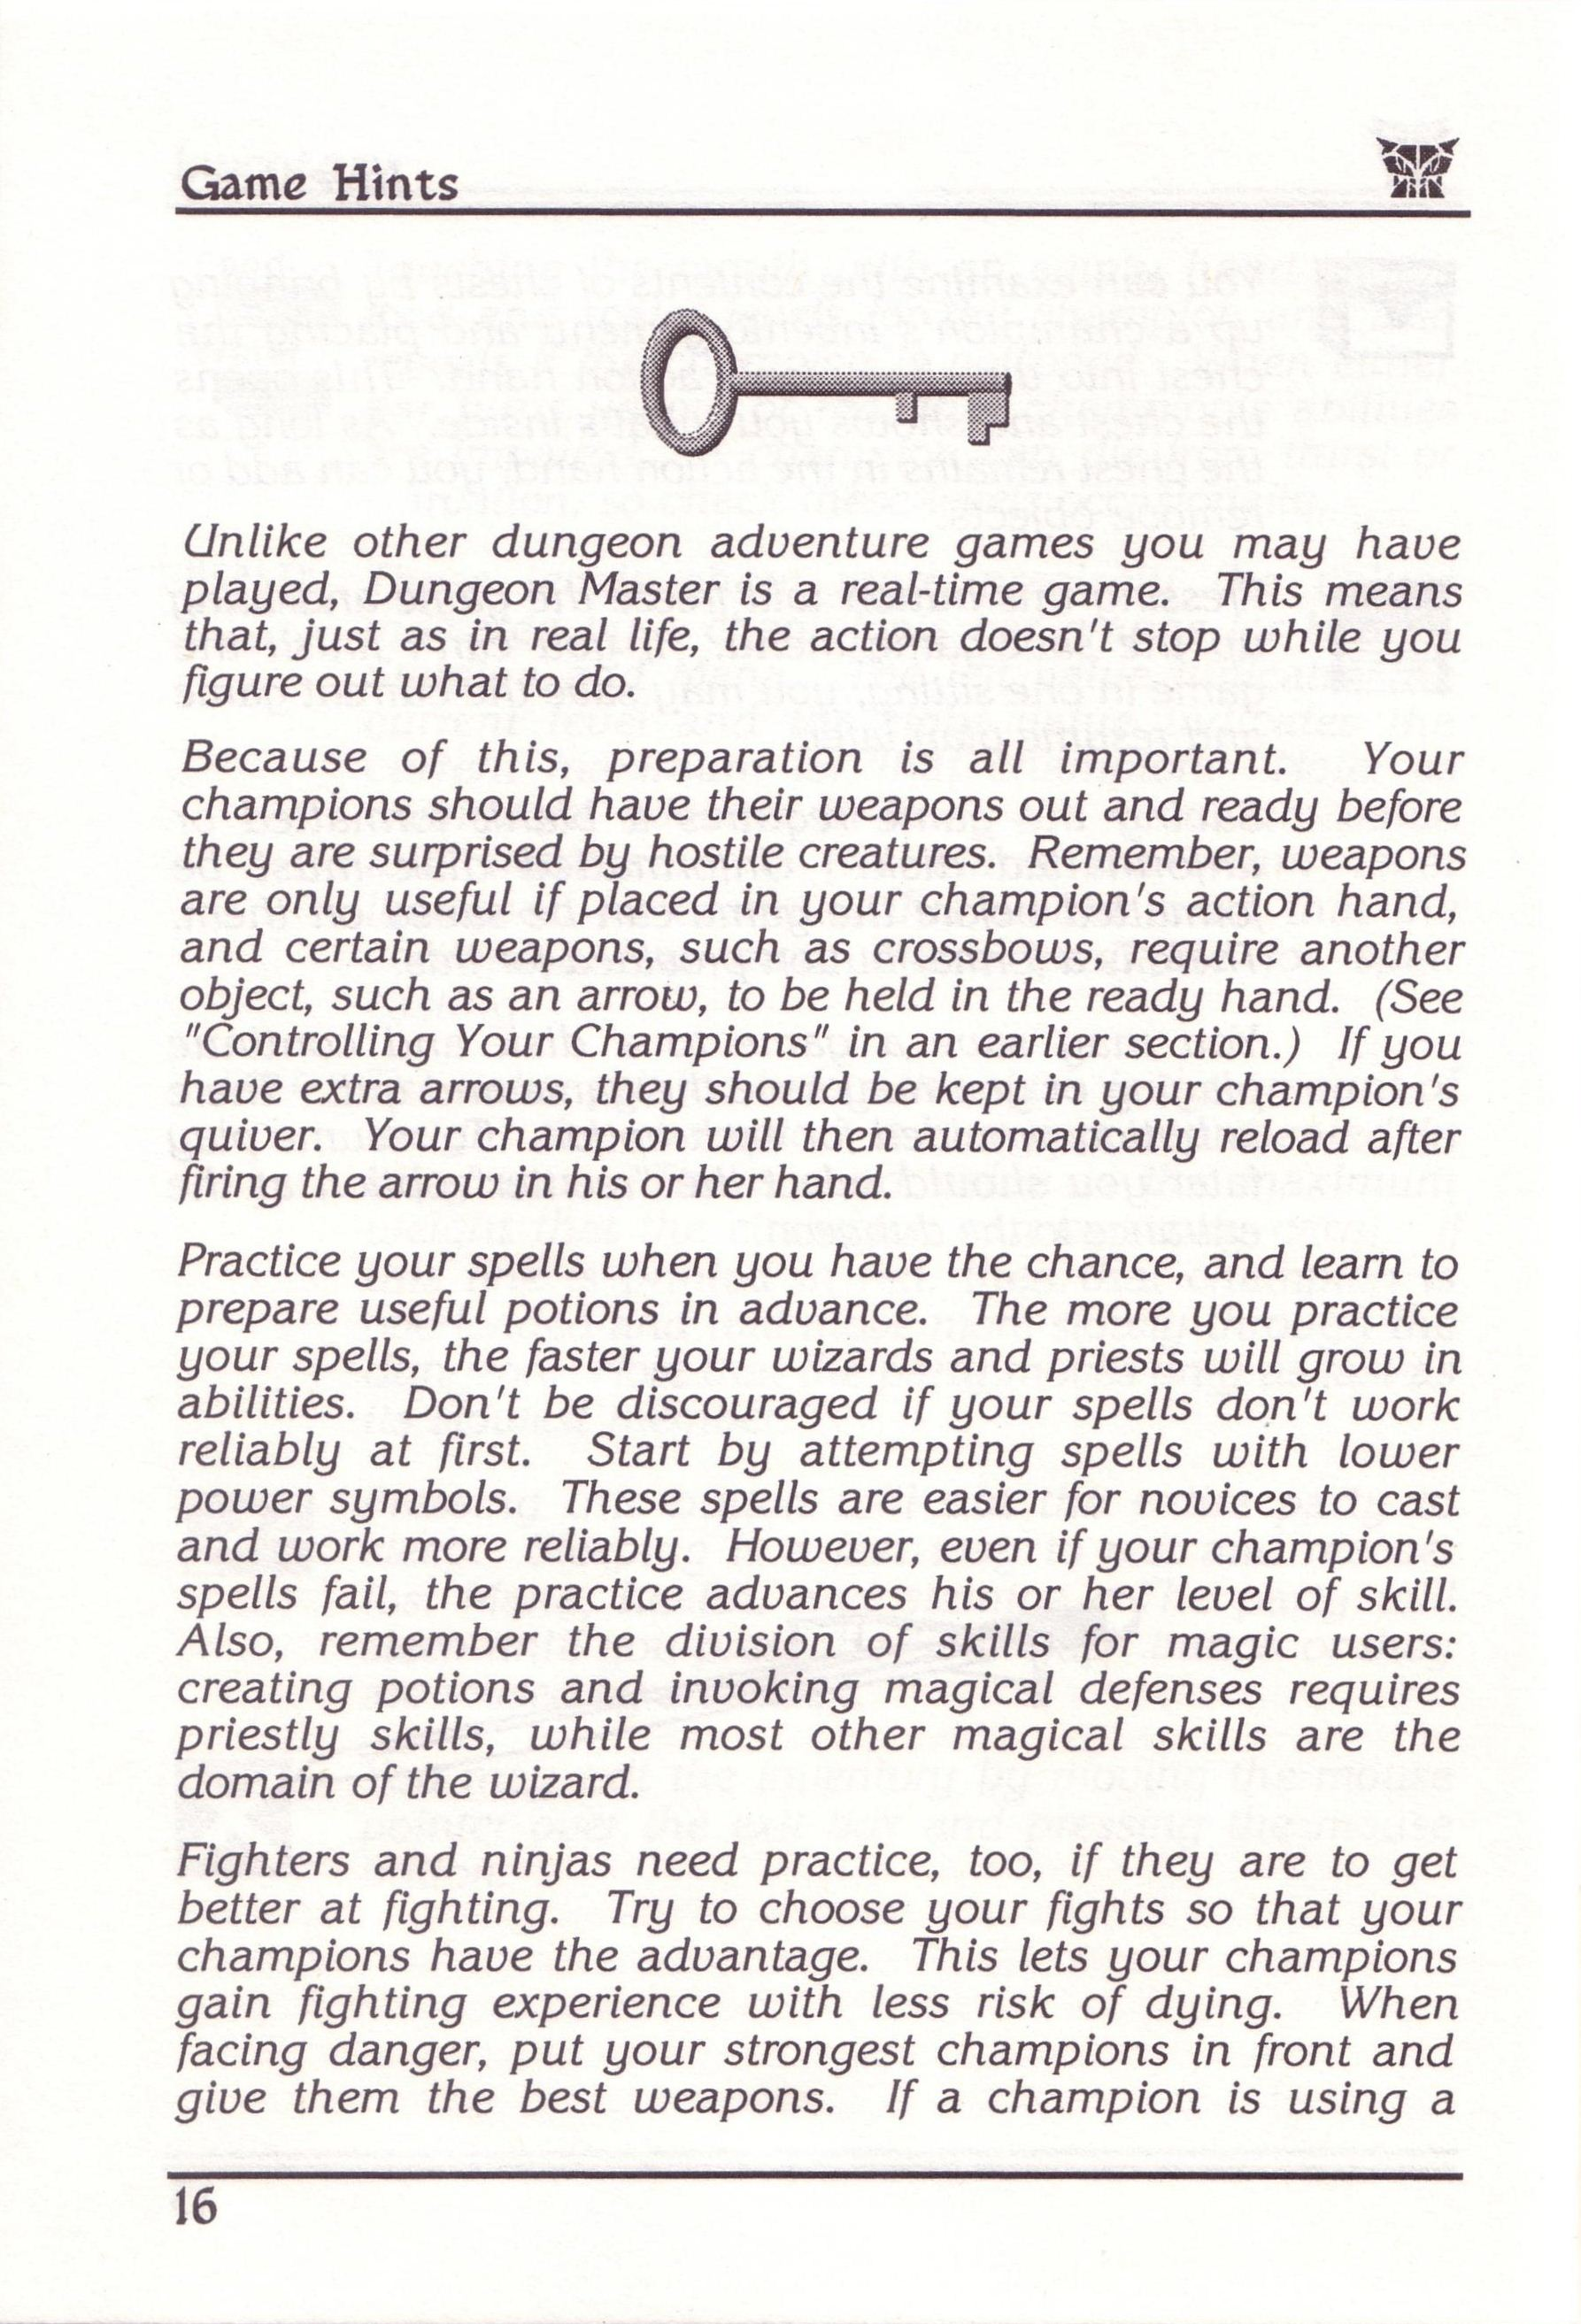 Dungeon Master for PC with FTL Sound Adapter (US Release) - Manual Page 40